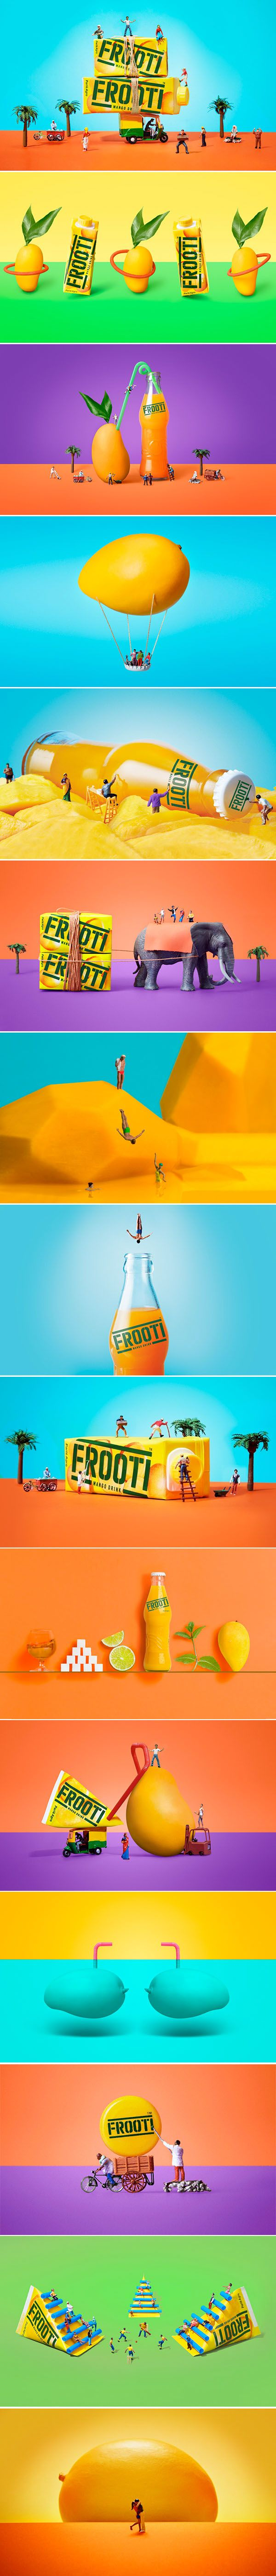 Frooti Packaging and Branding Redesign by Sagmeister & Walsh